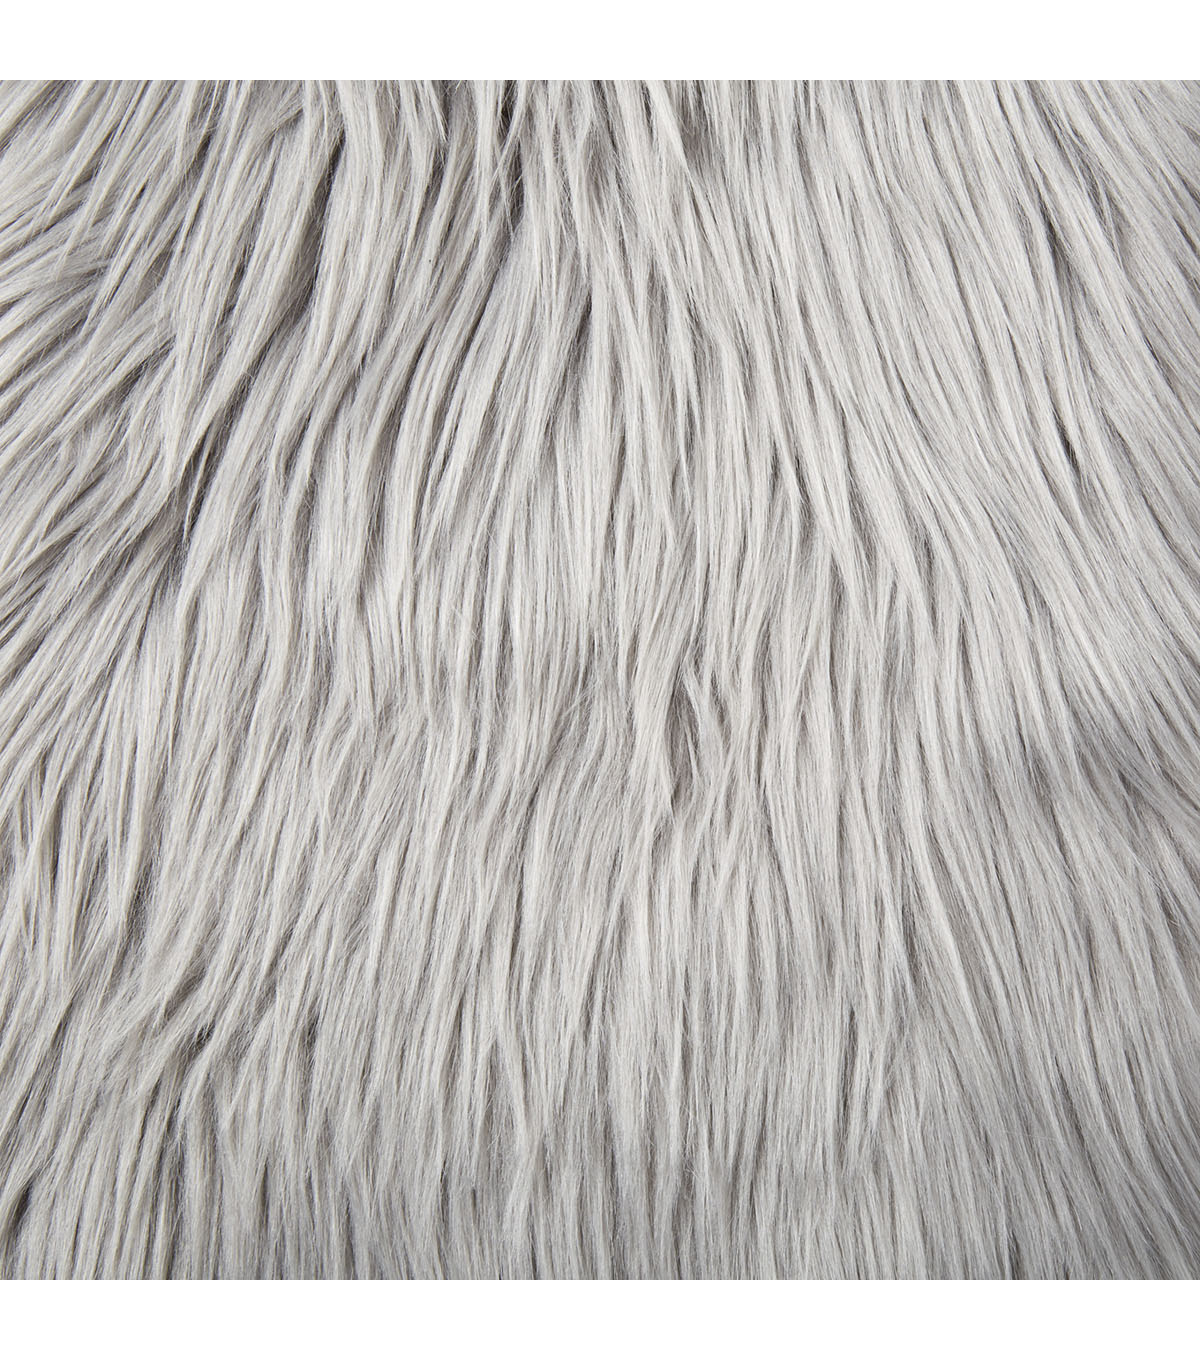 Fashion Faux Husky Fur Fabric Grey